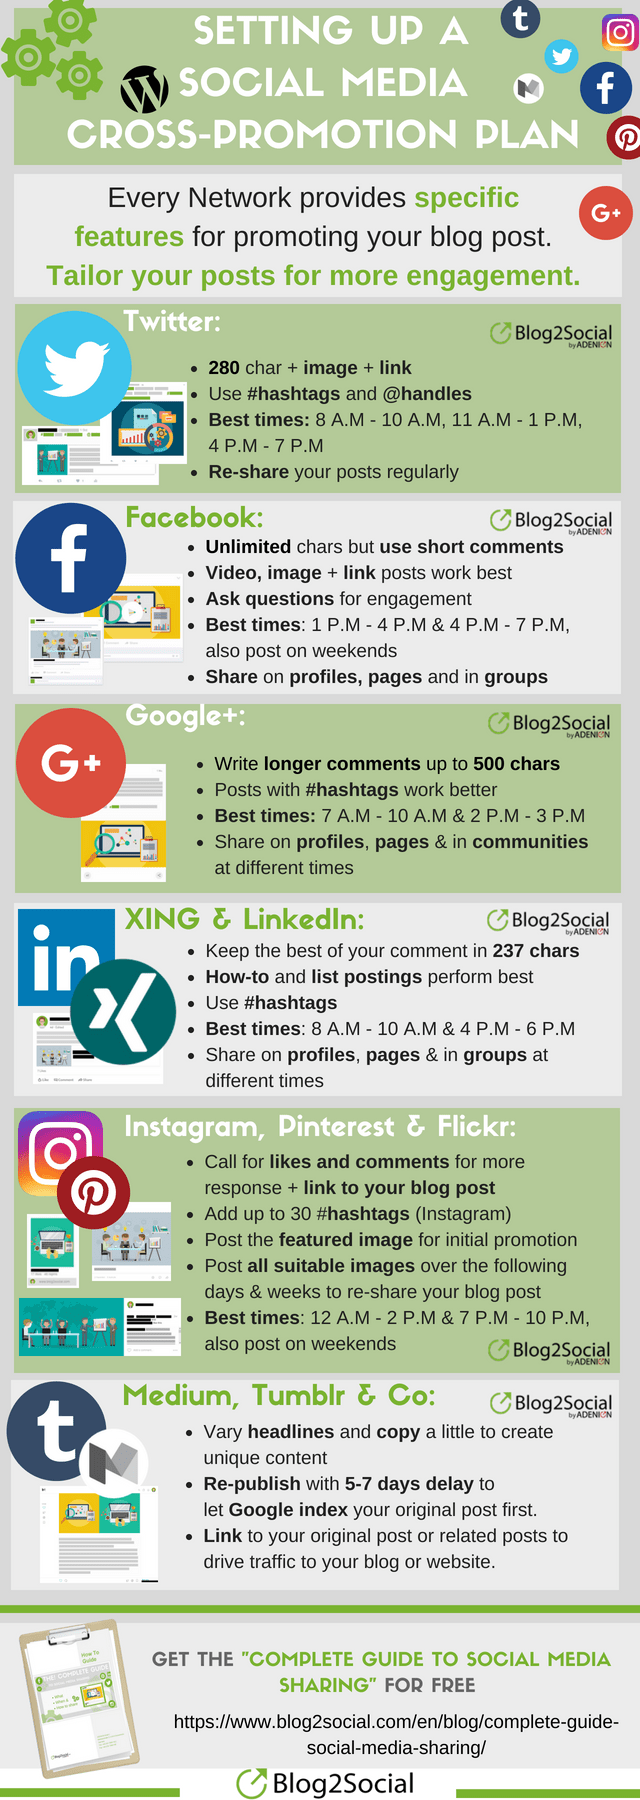 Setting up a social media cross promotion plan